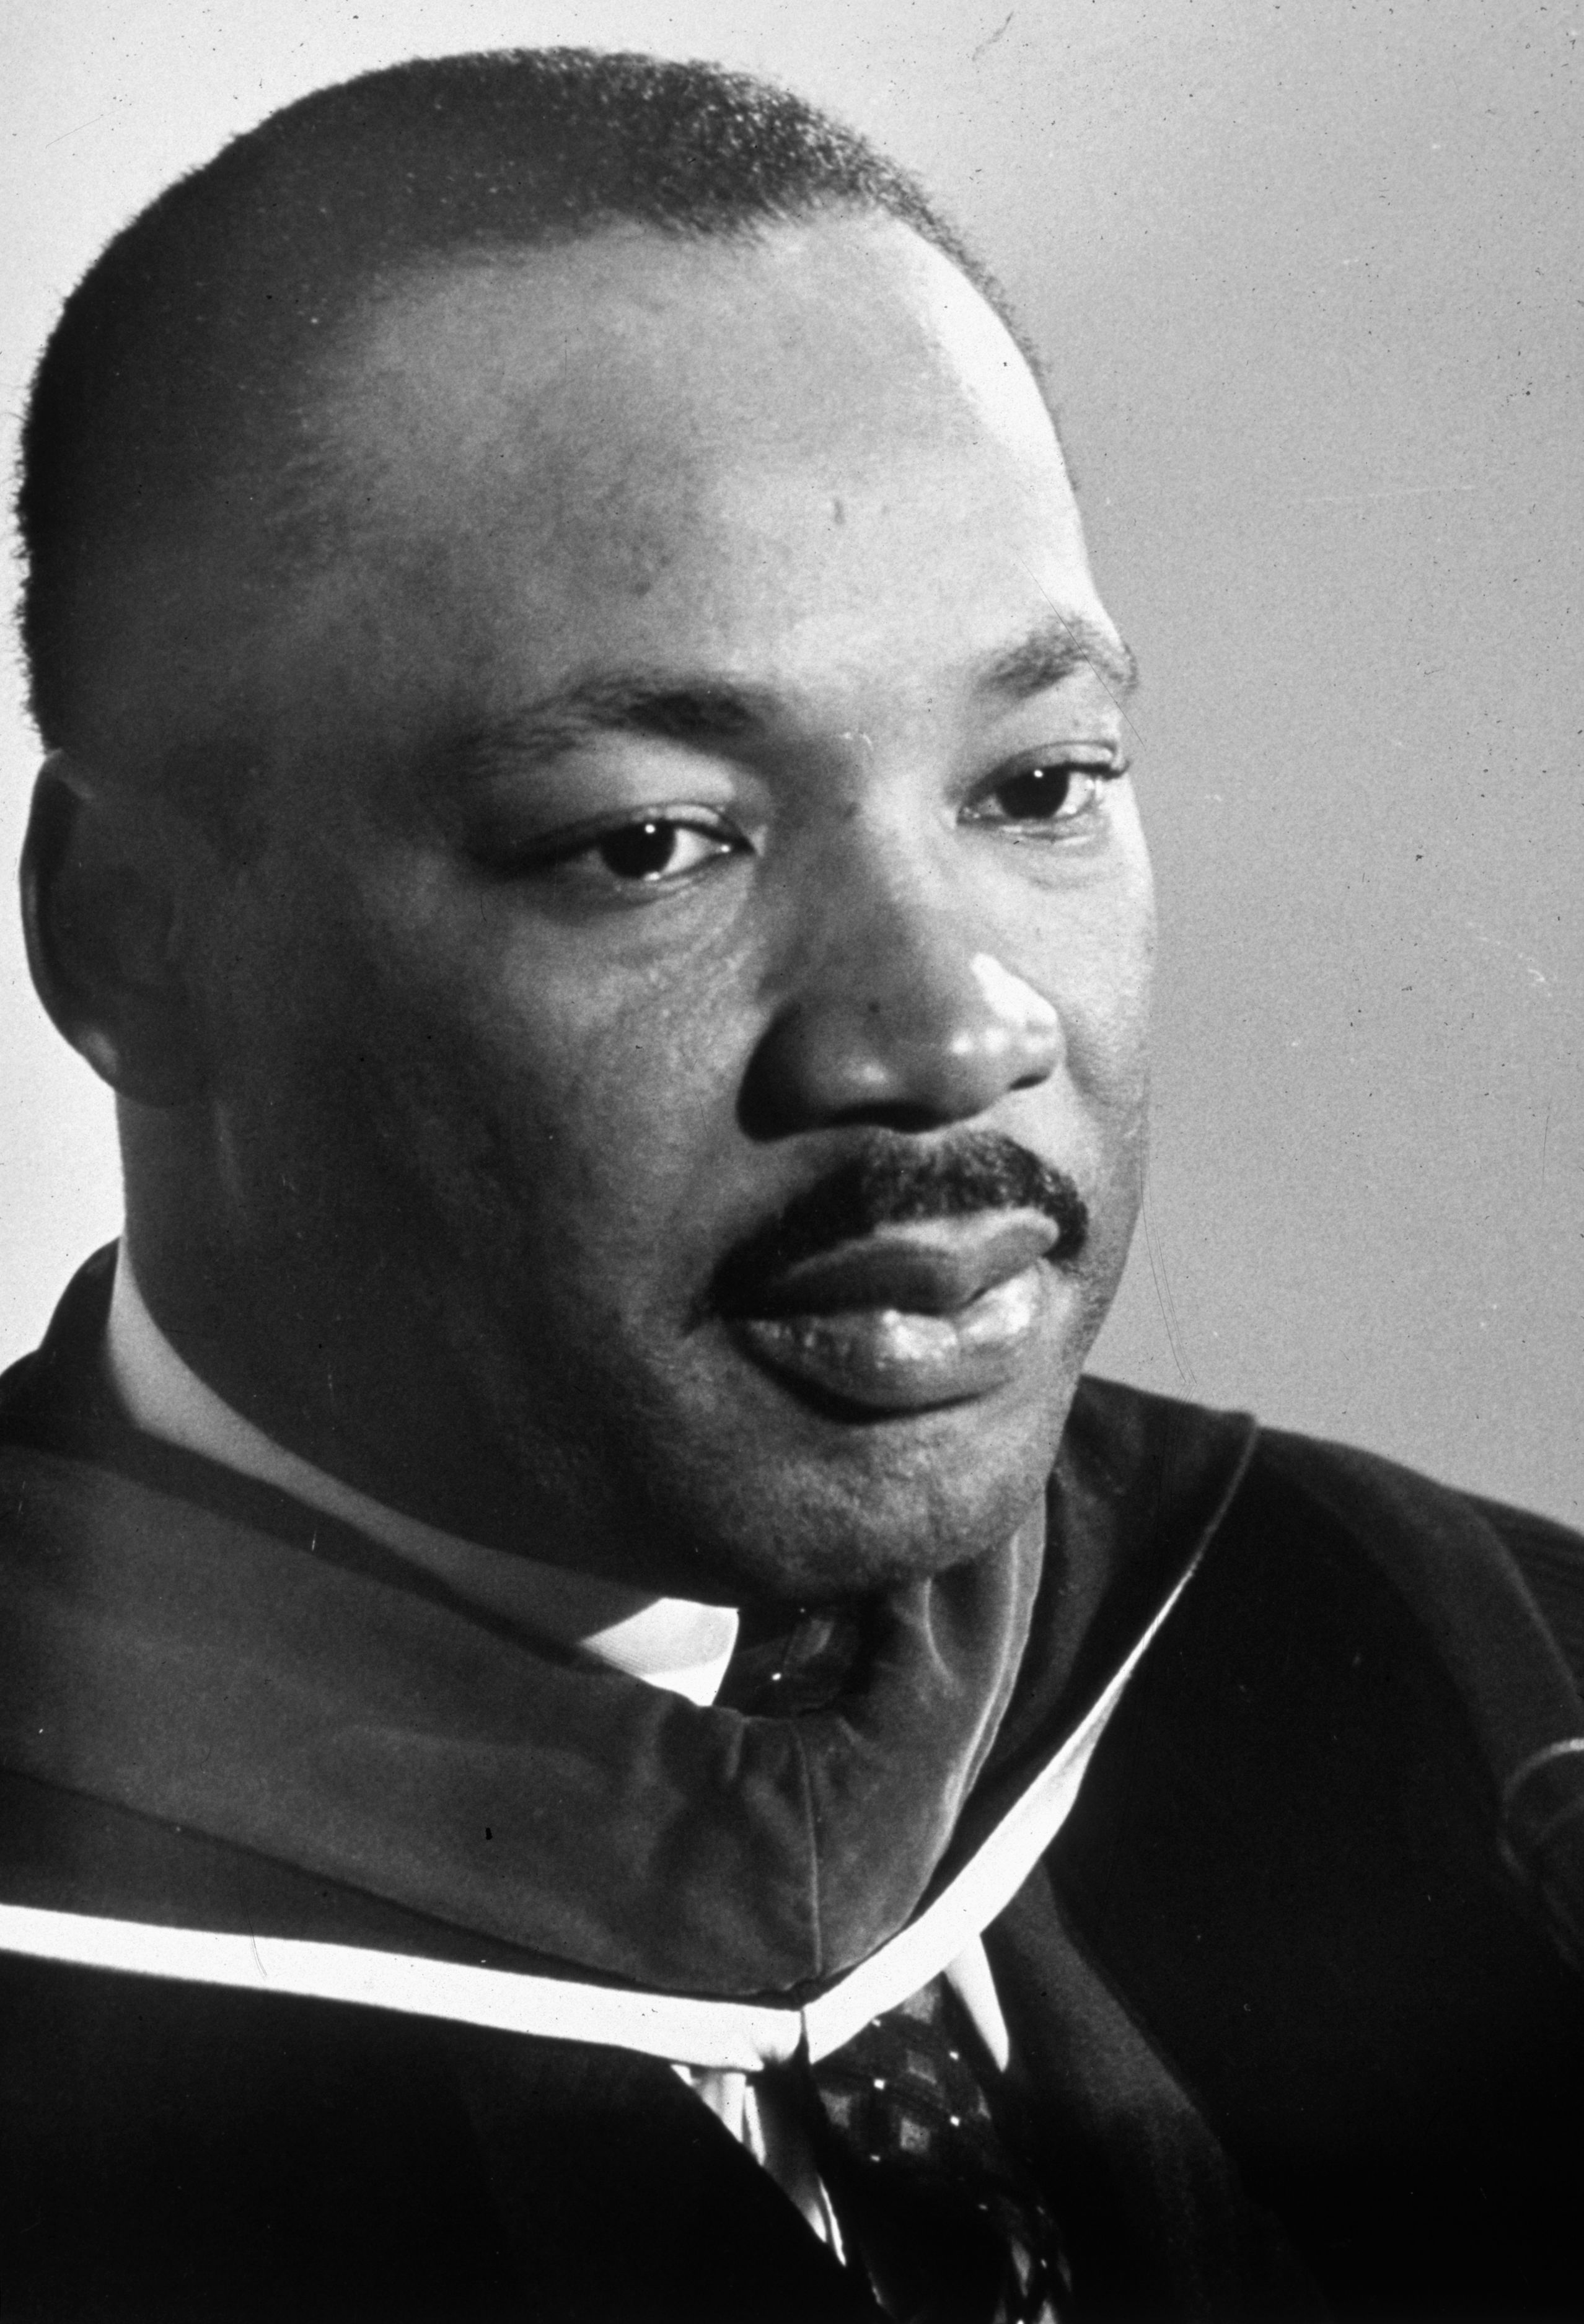 martin luther king jr writings A testament of hope: the essential writings and speeches of dr king by martin luther king, jr edited by james m washington.